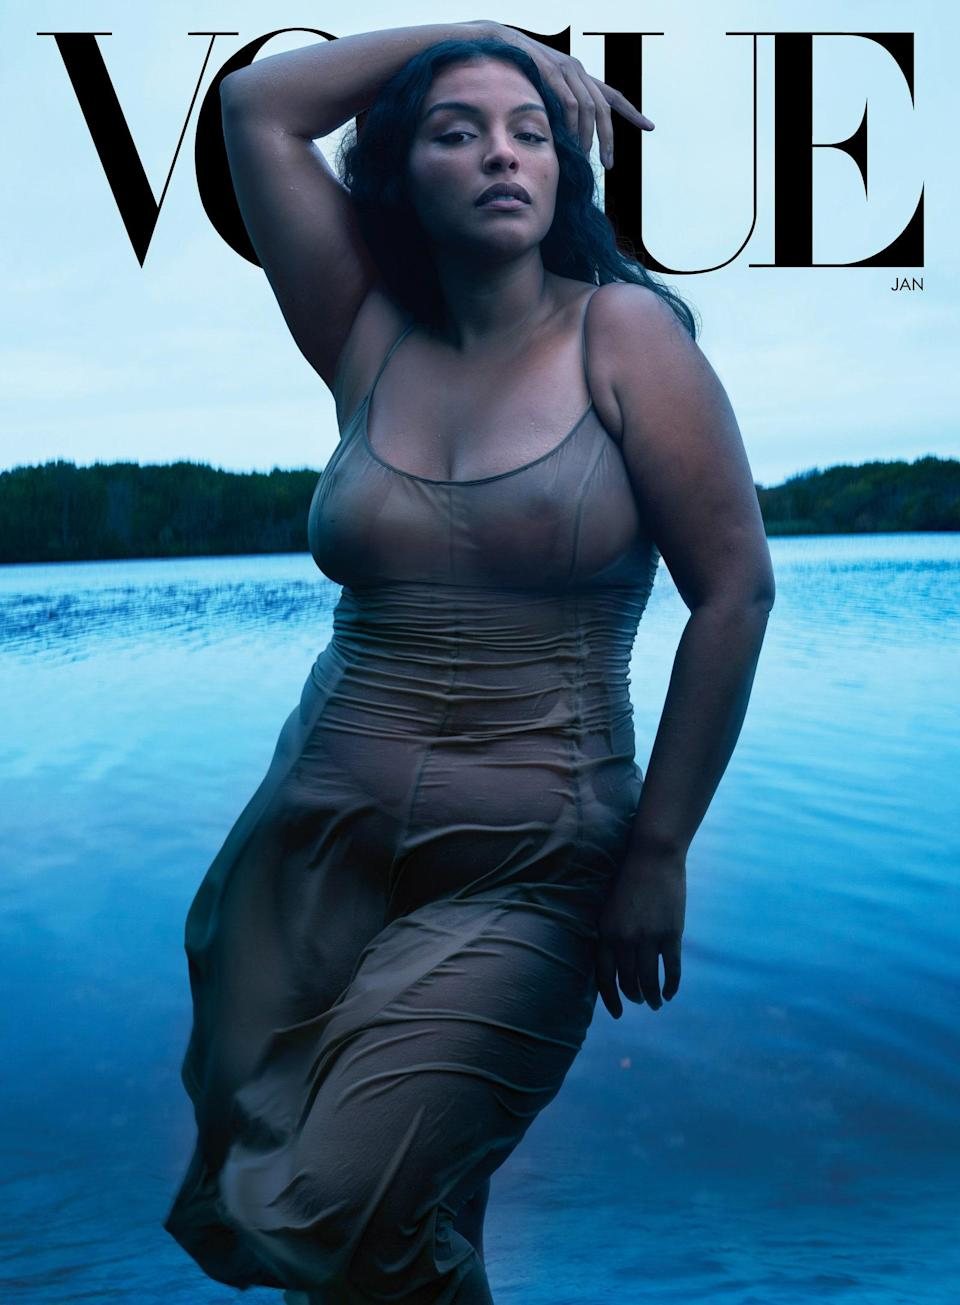 The cover of US Vogue January 2021 with Paloma Elsesser